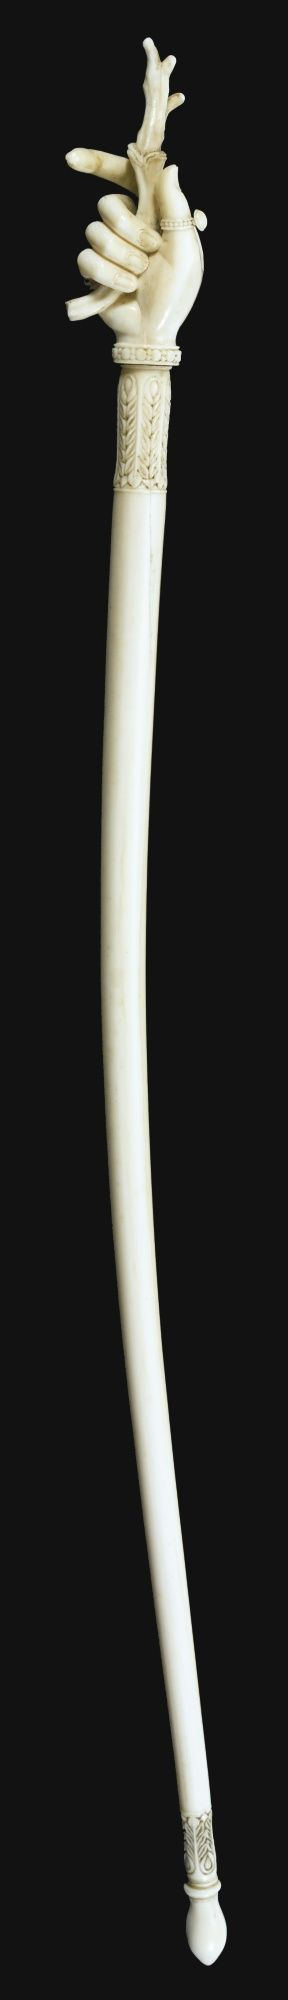 A CARVED IVORY BACK-SCRATCHER, MURSHIDABAD, CIRCA 1800 the ivory carved in the form of a hand wearing a thumb-ring and a pearl bracelet, clasping a gnarled root, antler, or piece of coral, with the extended index finger and part of splayed coral acting as the scratchers, carved palmette motifs to top and bottom of handle   40.2cm.